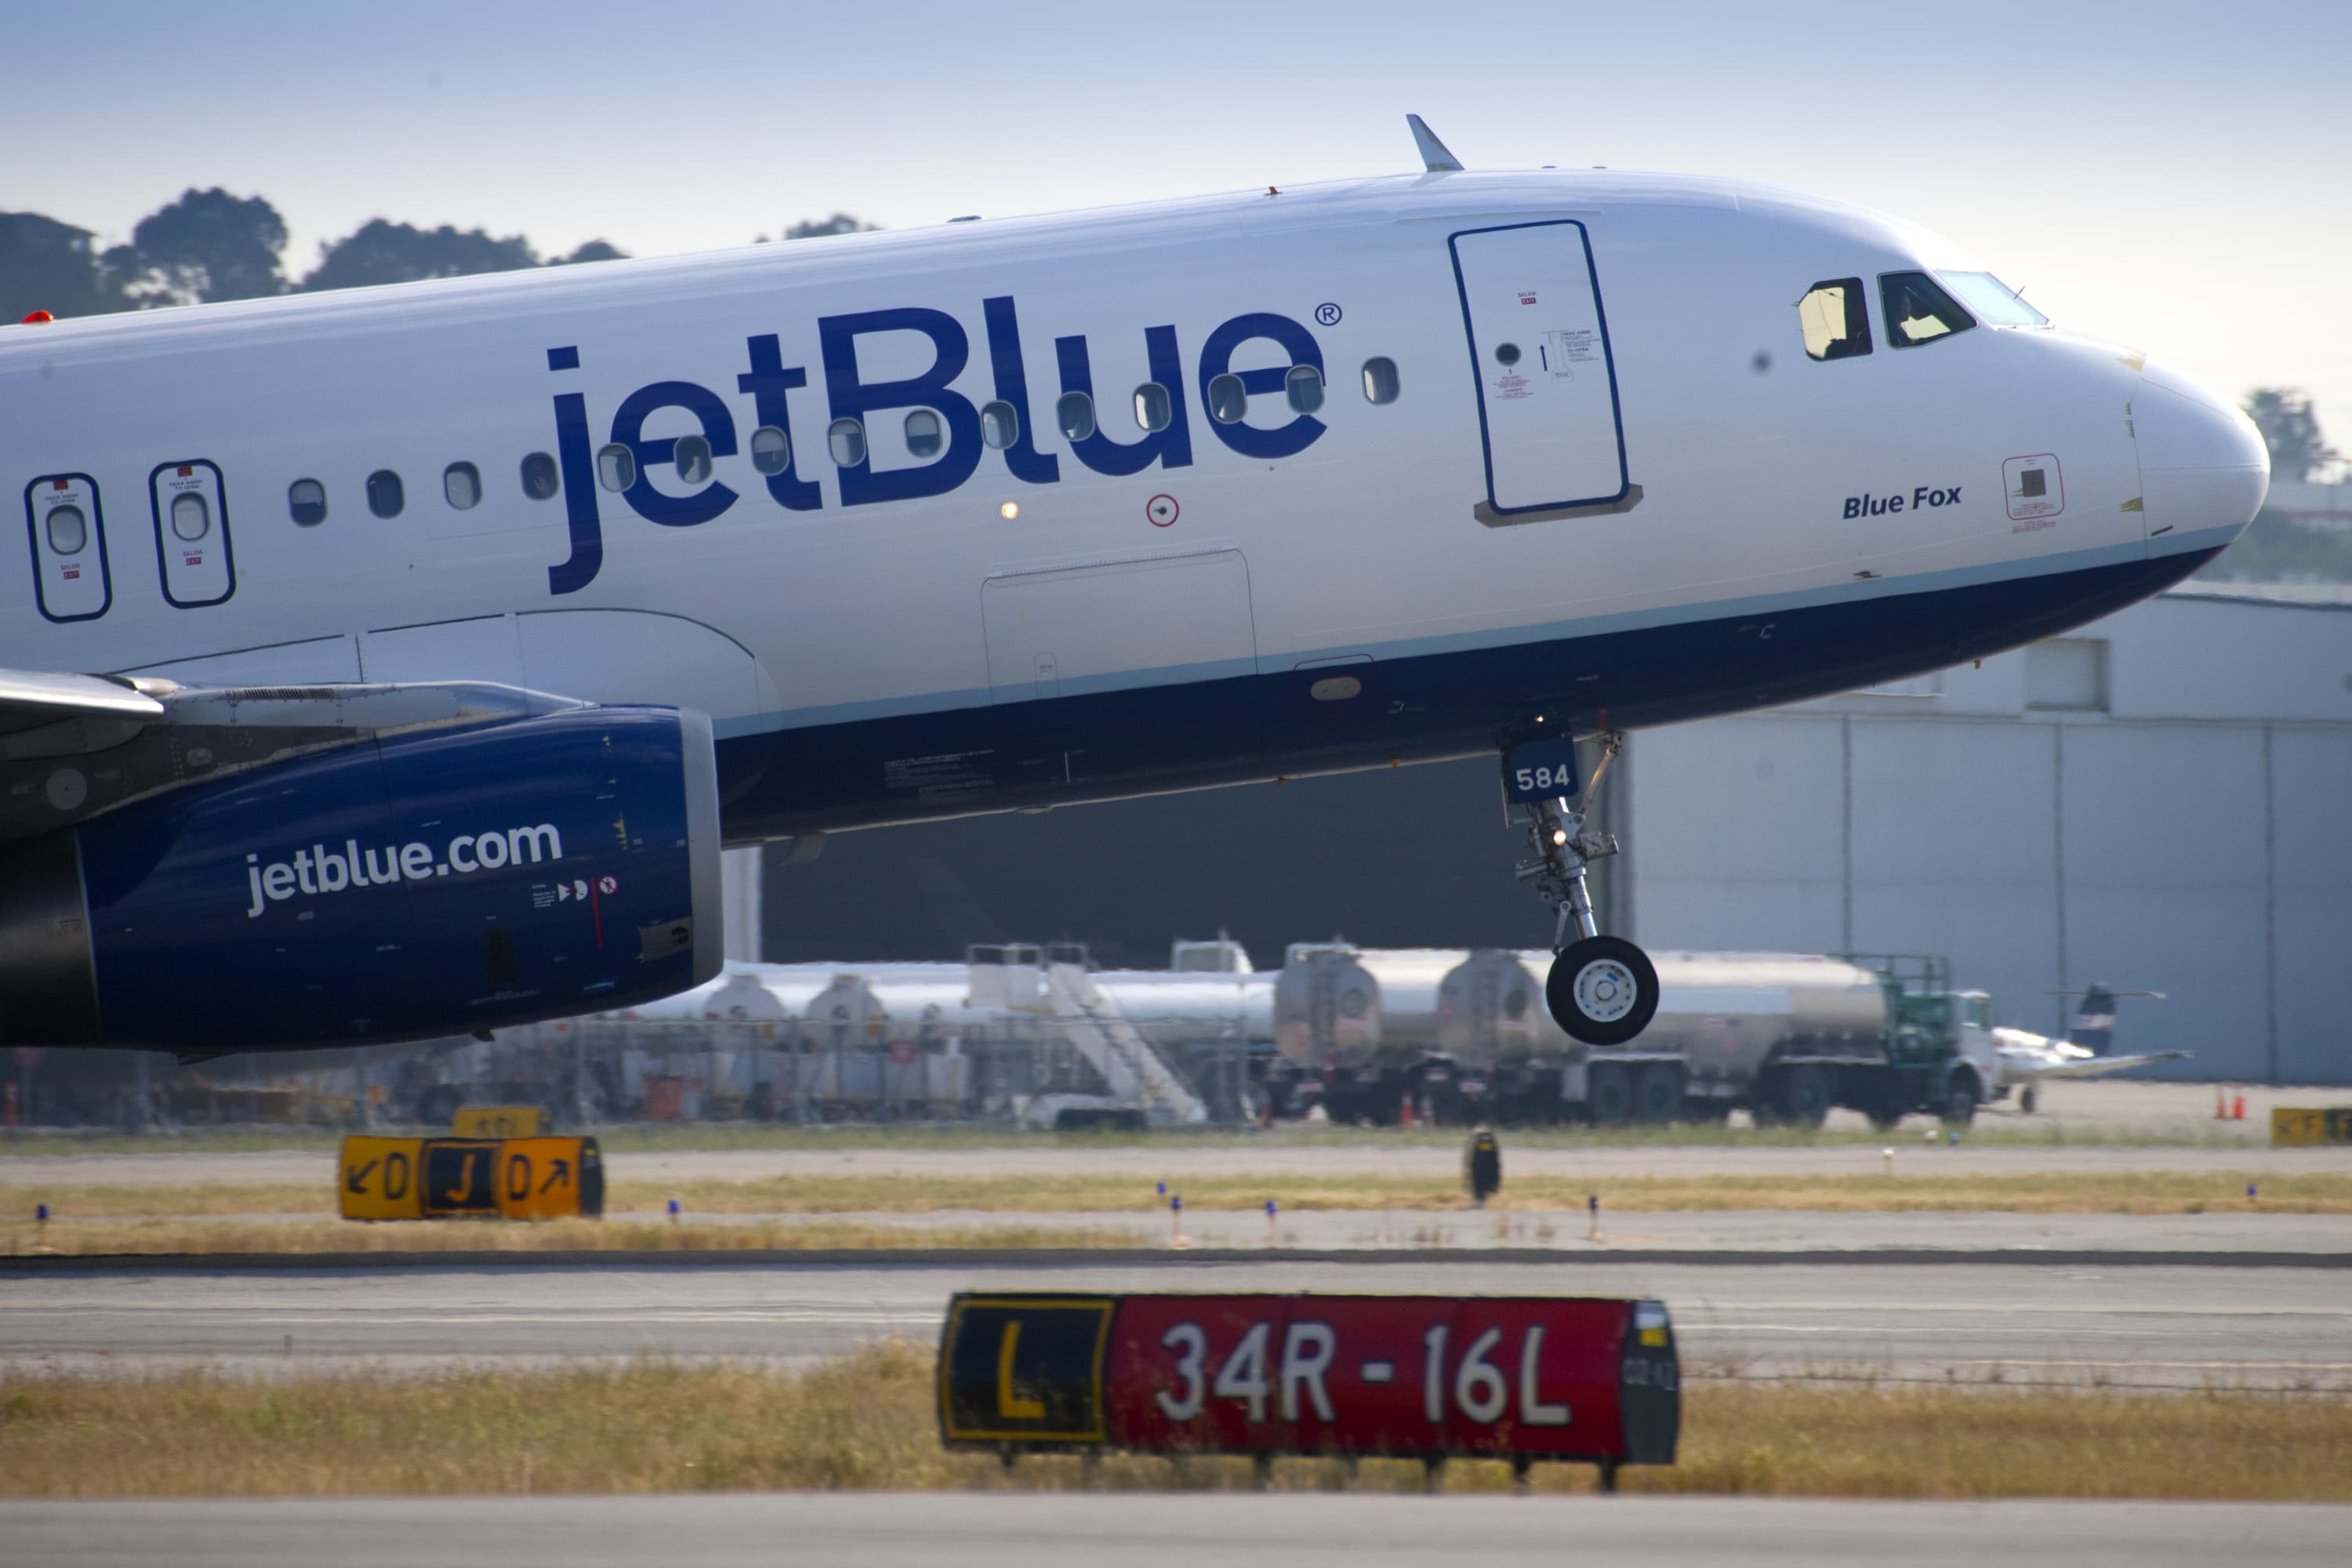 A Jet Blue aircraft takes off from Long Beach Airport in Long Beach, CA.